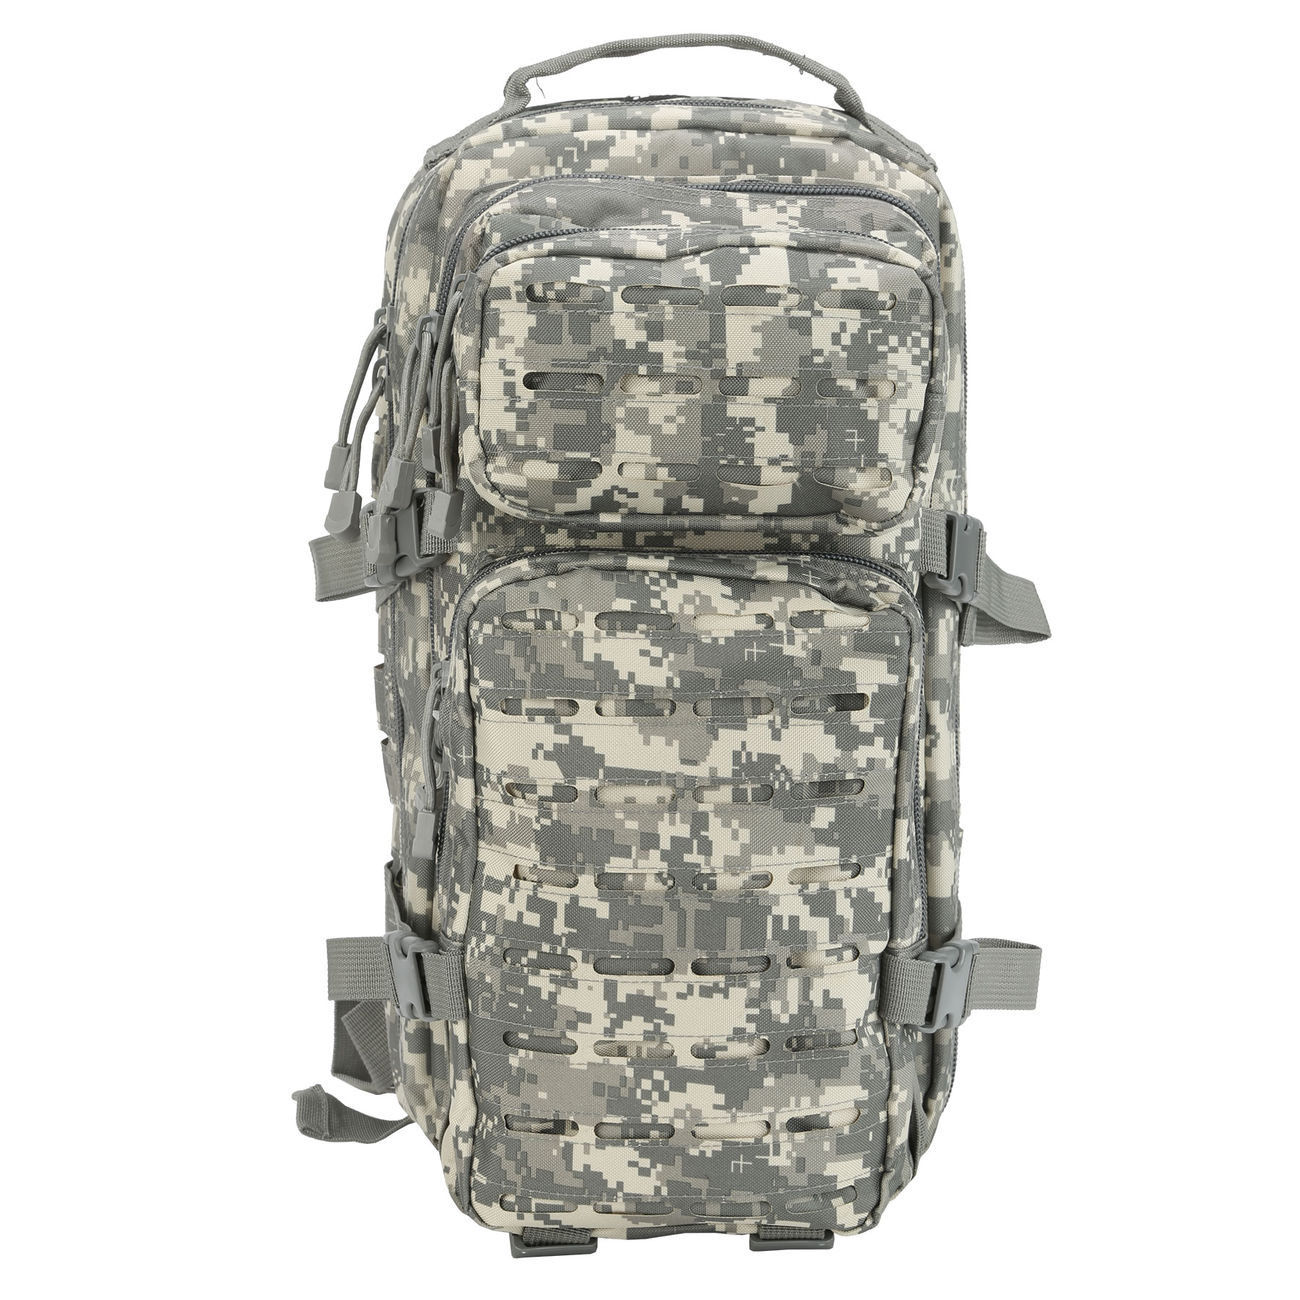 MFH Rucksack US Assault I Laser 30L AT-digital 6